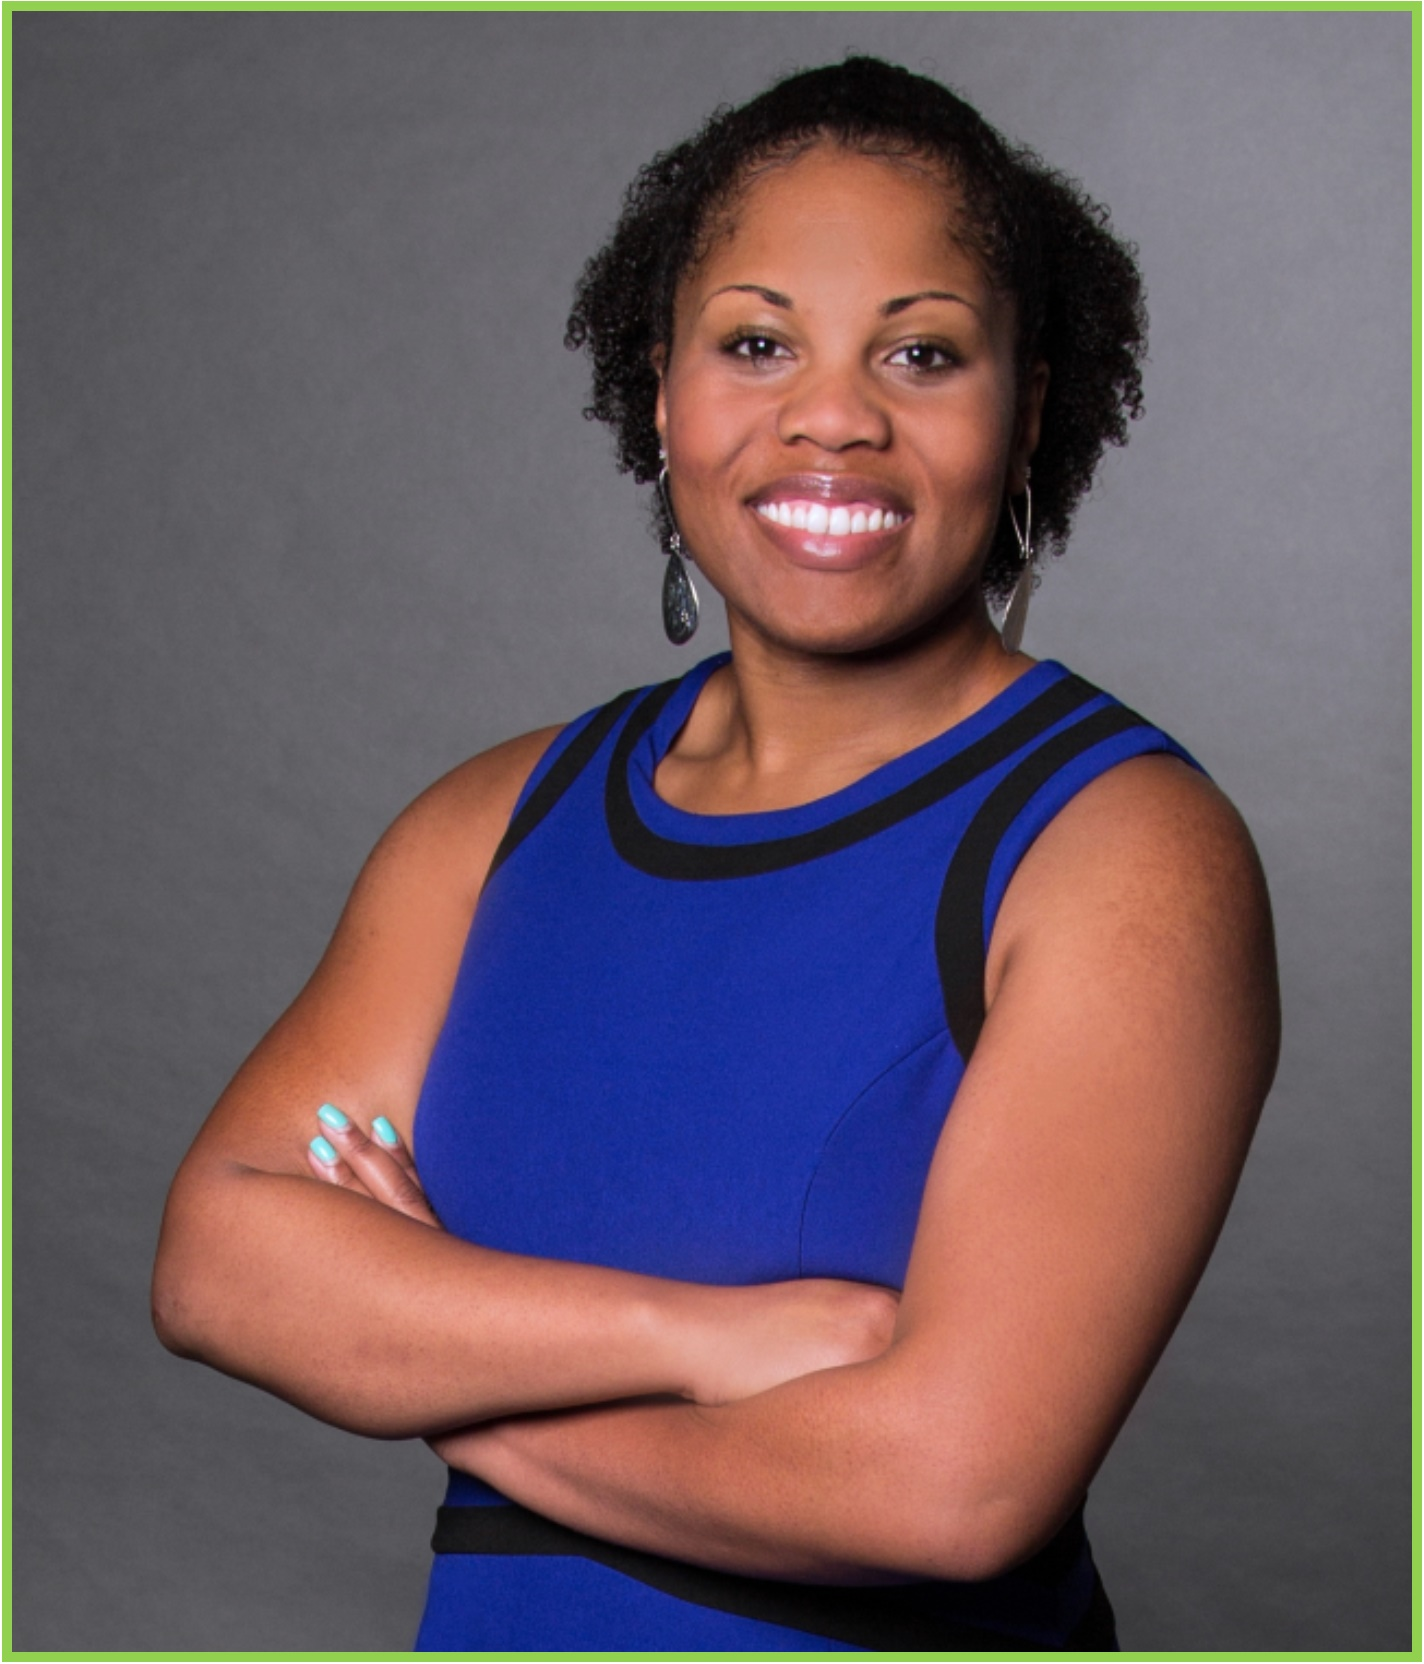 Dr. Tiffany Willis